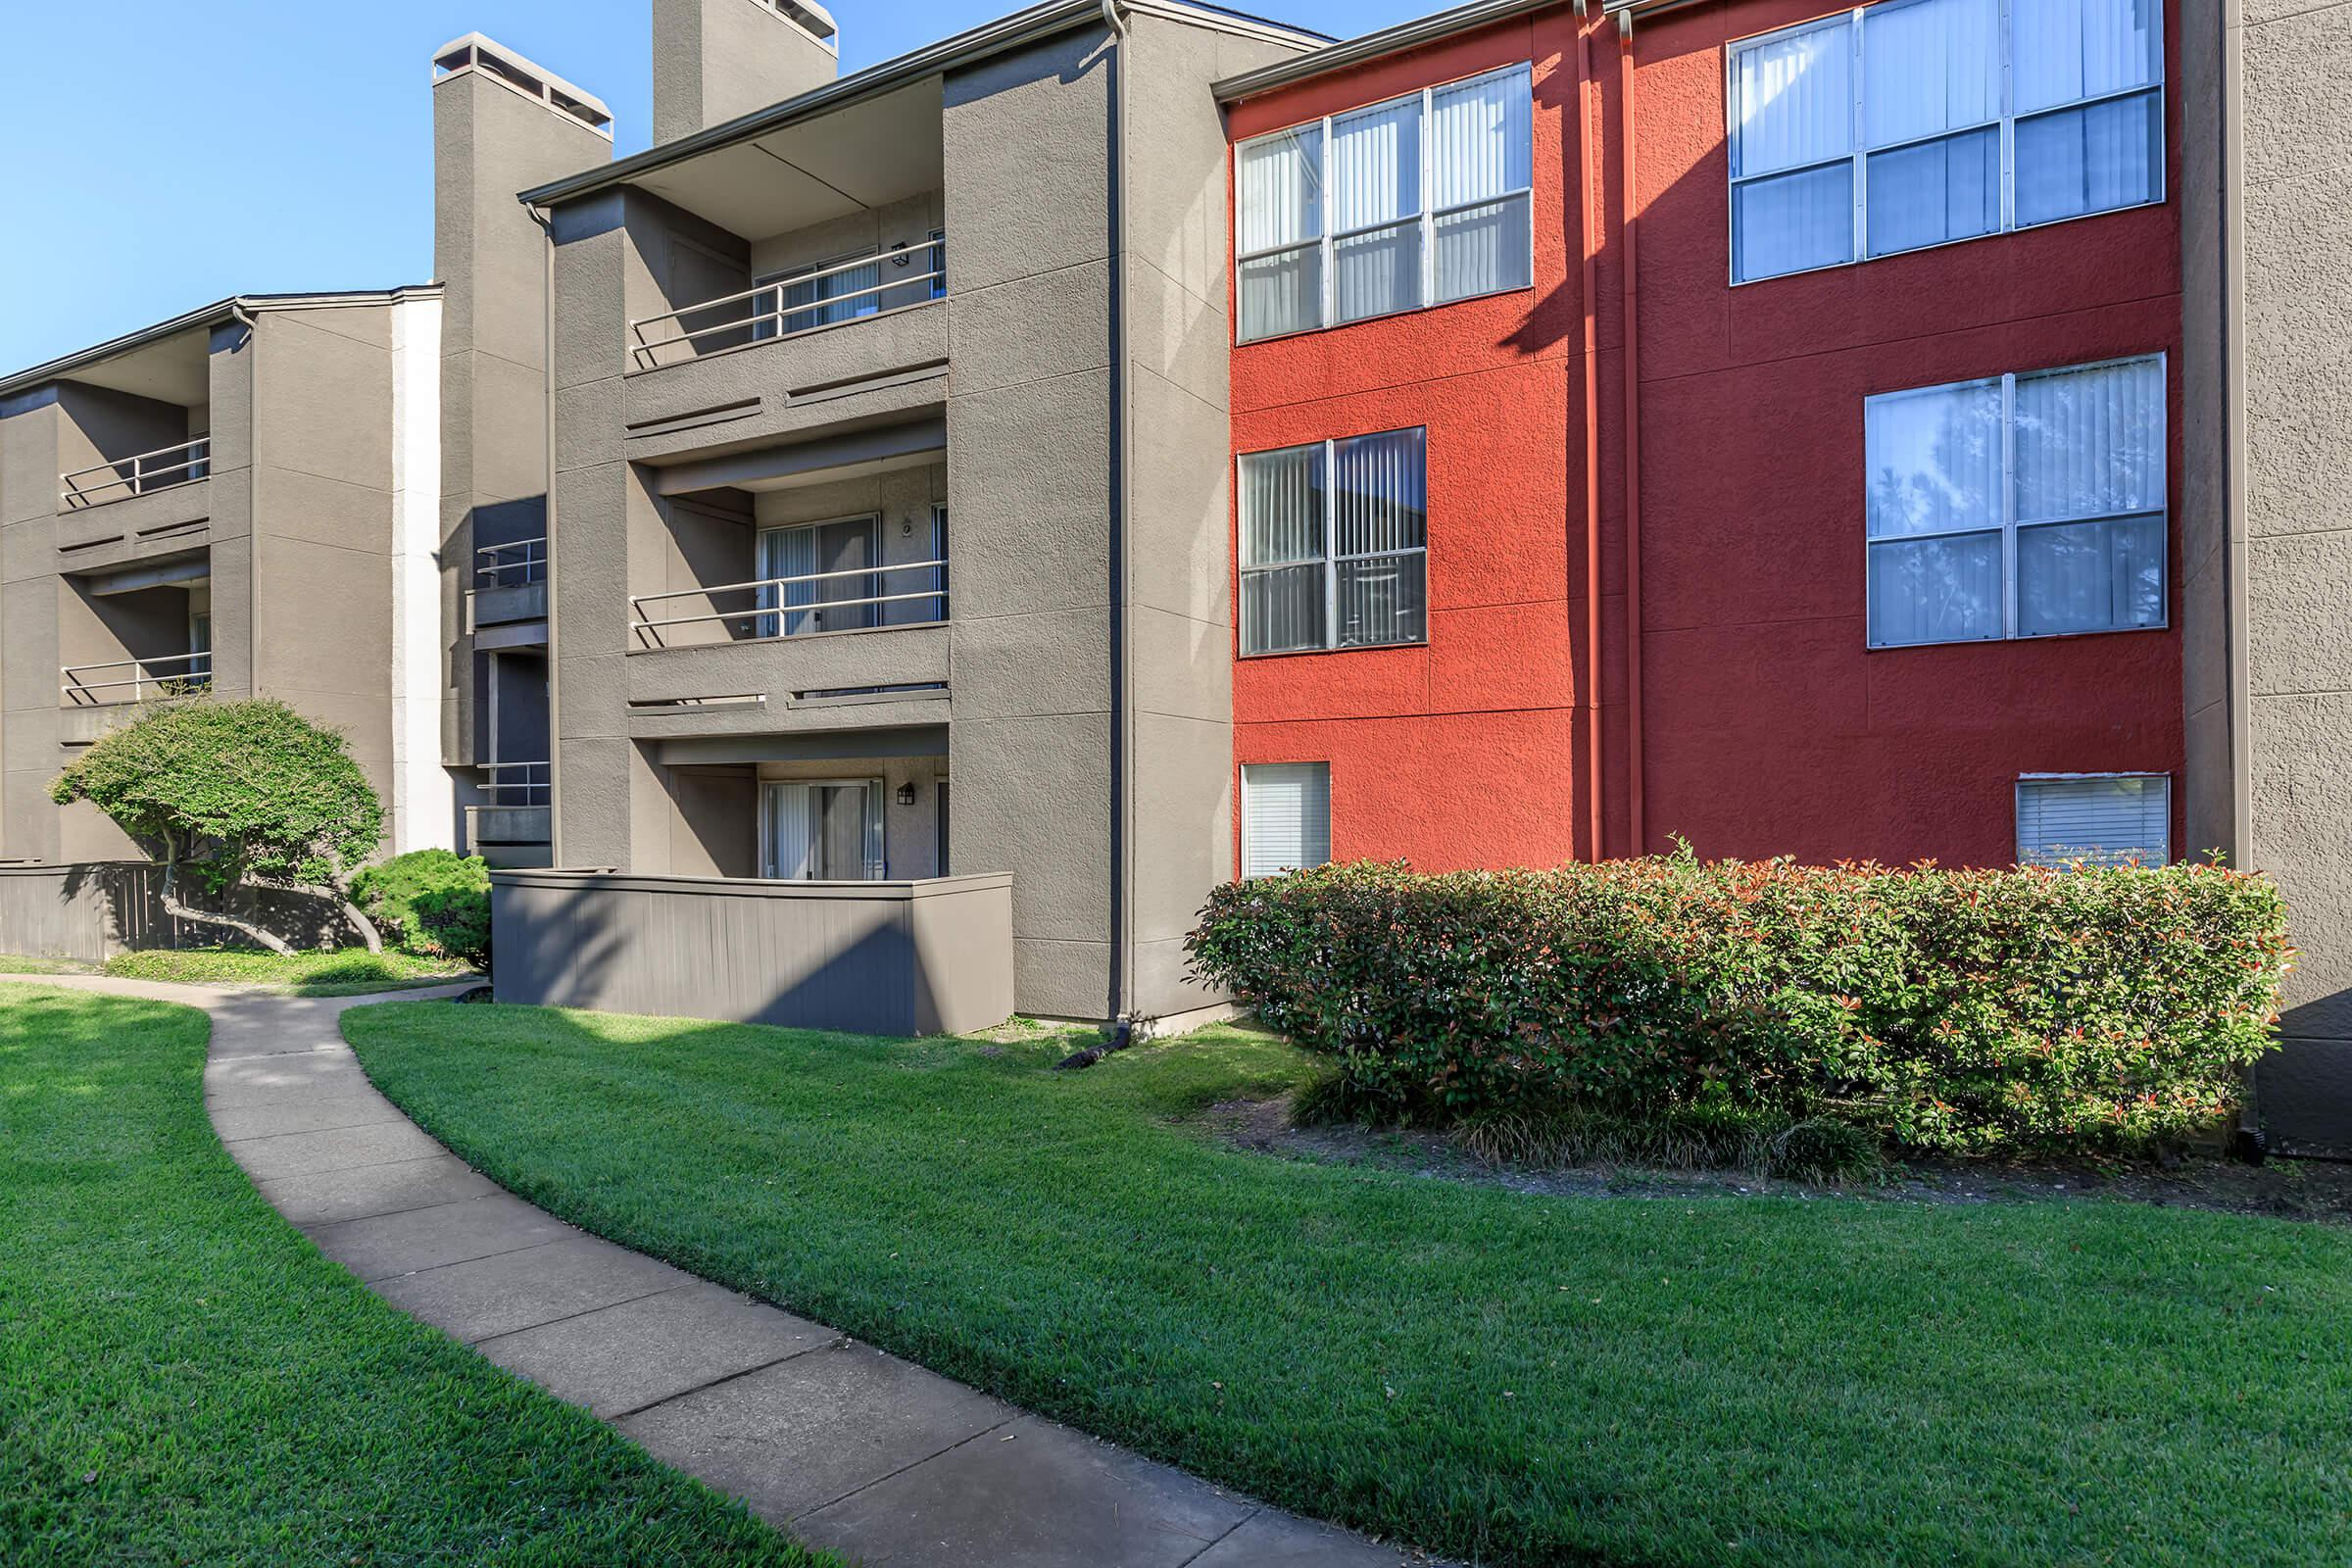 Apartments Near Amberton One Townecrest for Amberton University Students in Garland, TX